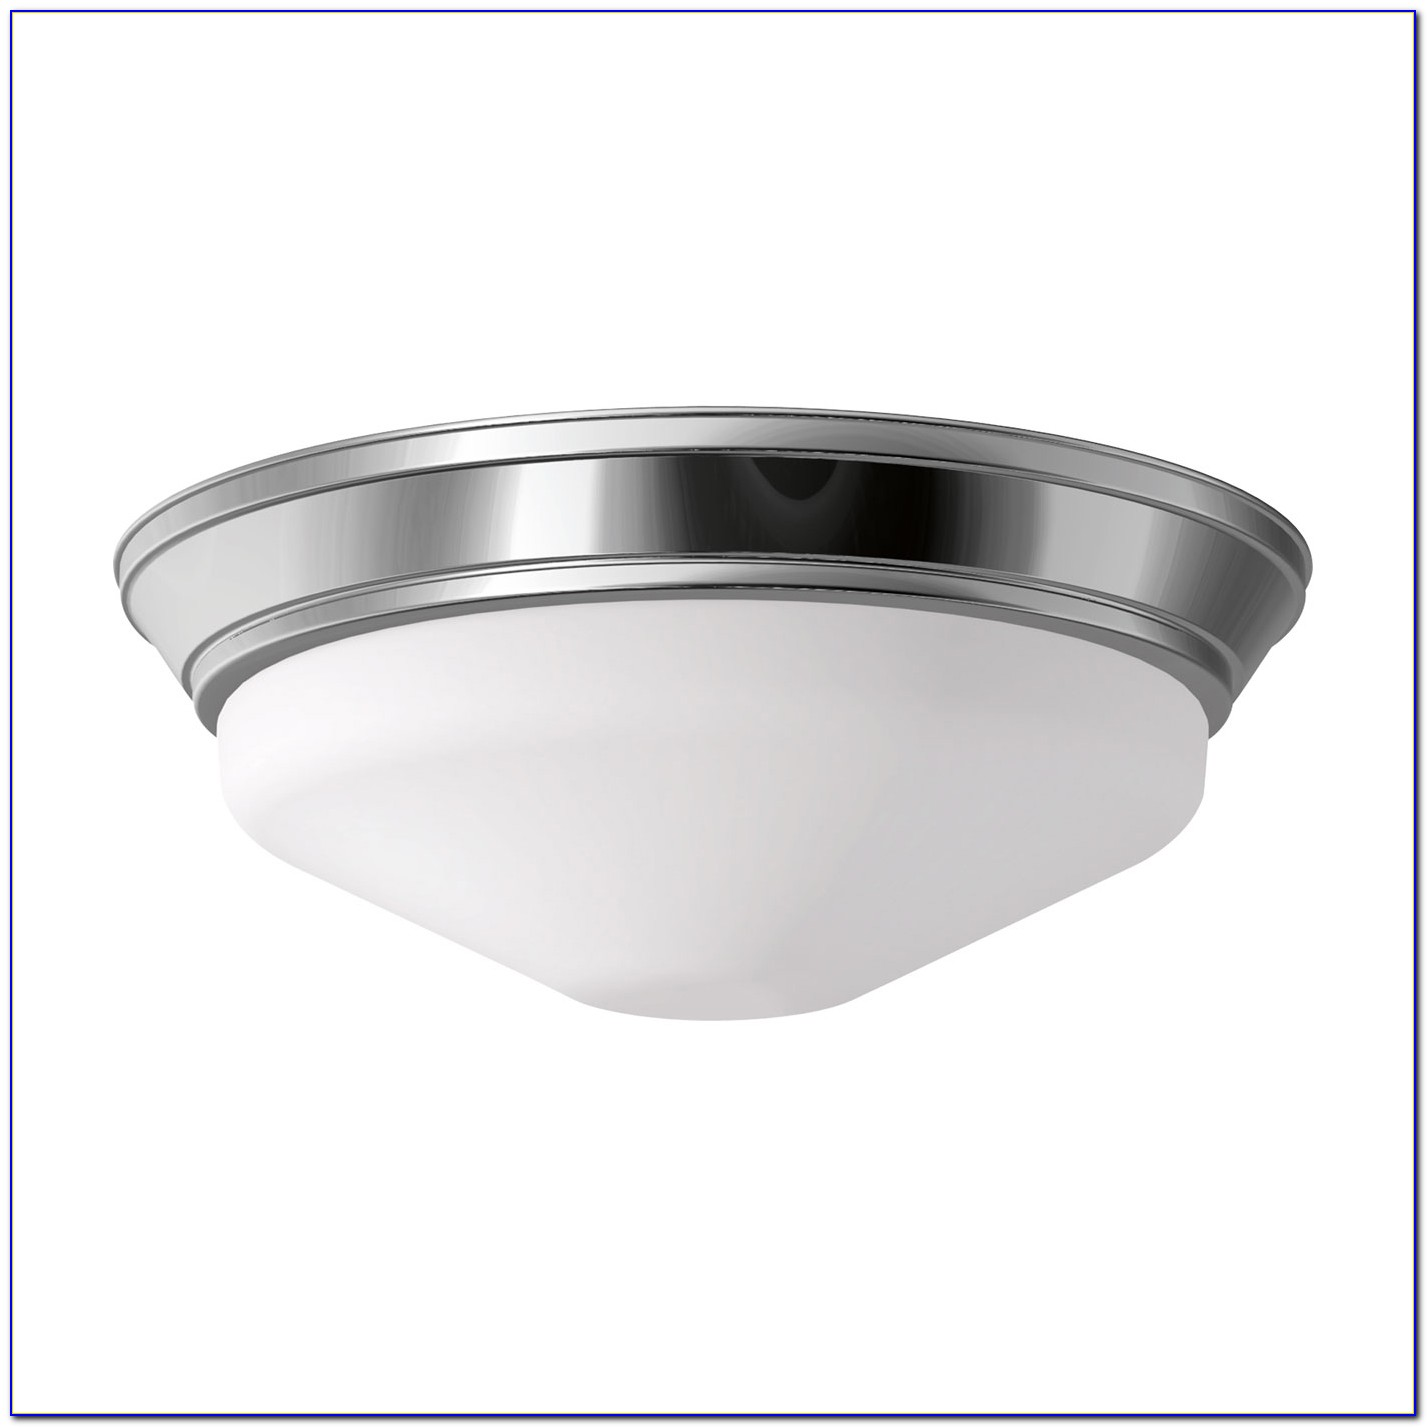 Ceiling Light Flush Mount Brushed Nickel